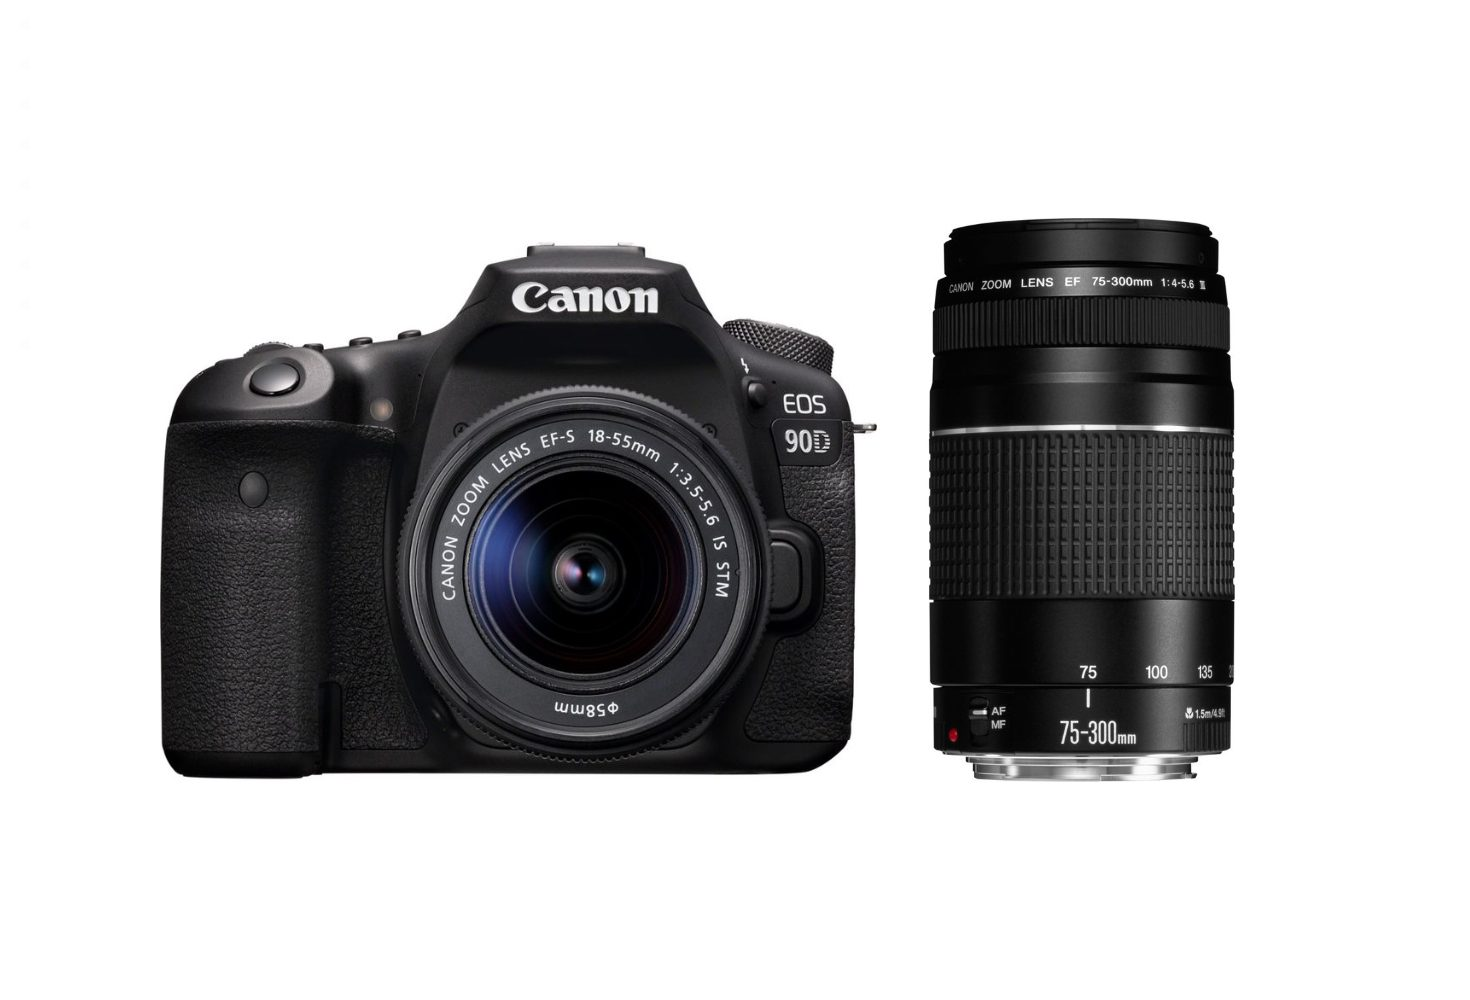 Canon EOS 90D Camera With 18-55mm STM Lens And 75-300MM F/4.0-5.6 III